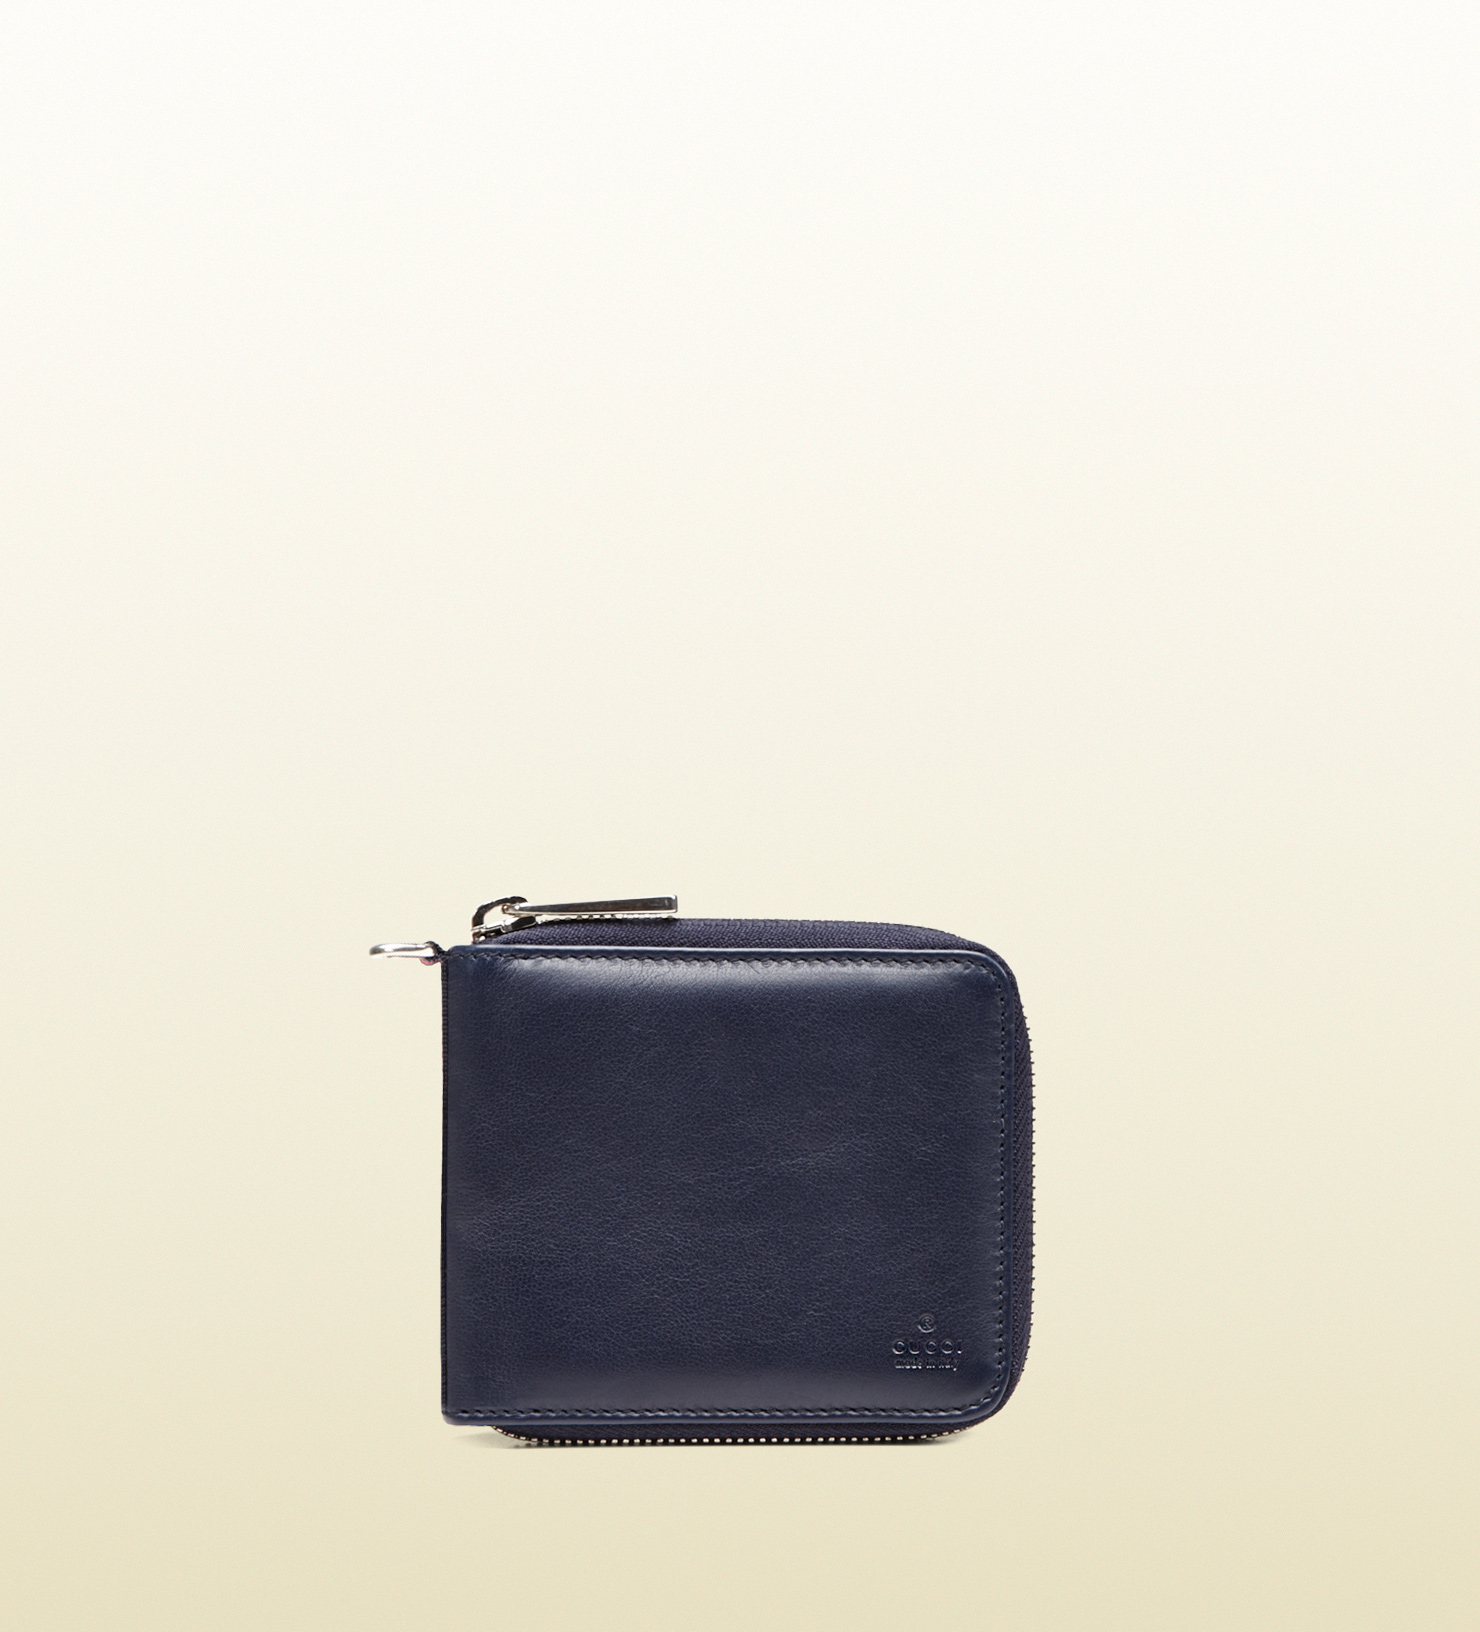 3021e447fce0 Gucci Leather Zip Around Wallet in Blue for Men - Lyst